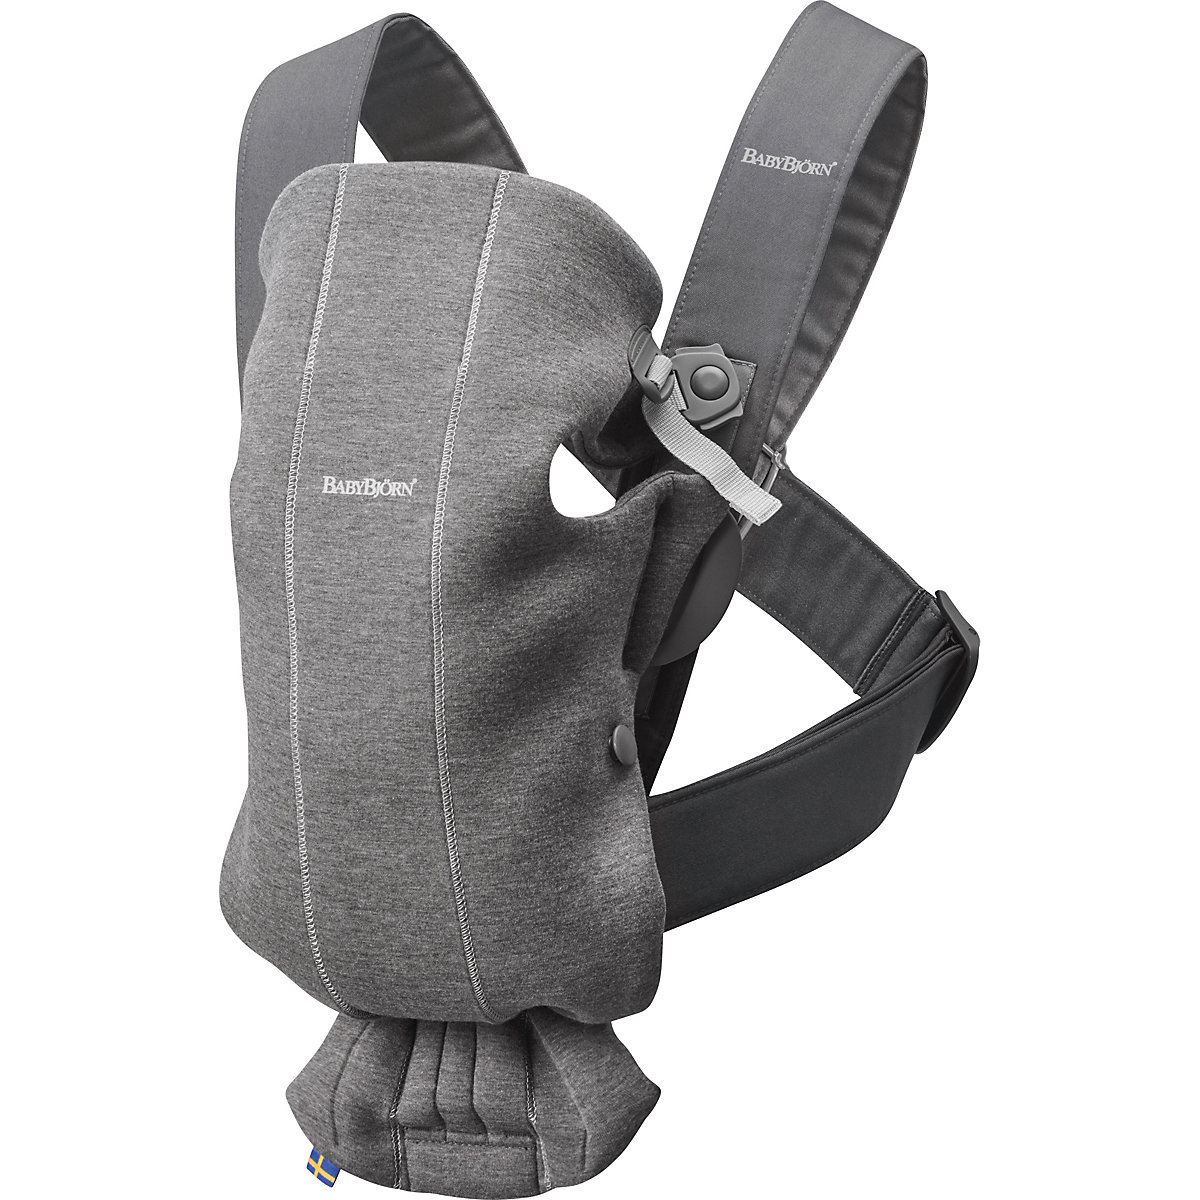 BABYBJORN Backpacks & Carriers 8584421 backpack carrier slings kangaroo for boy and girl school bags grizzly 10521132 schoolbag backpack orthopedic bag for boy and girl animals flowers